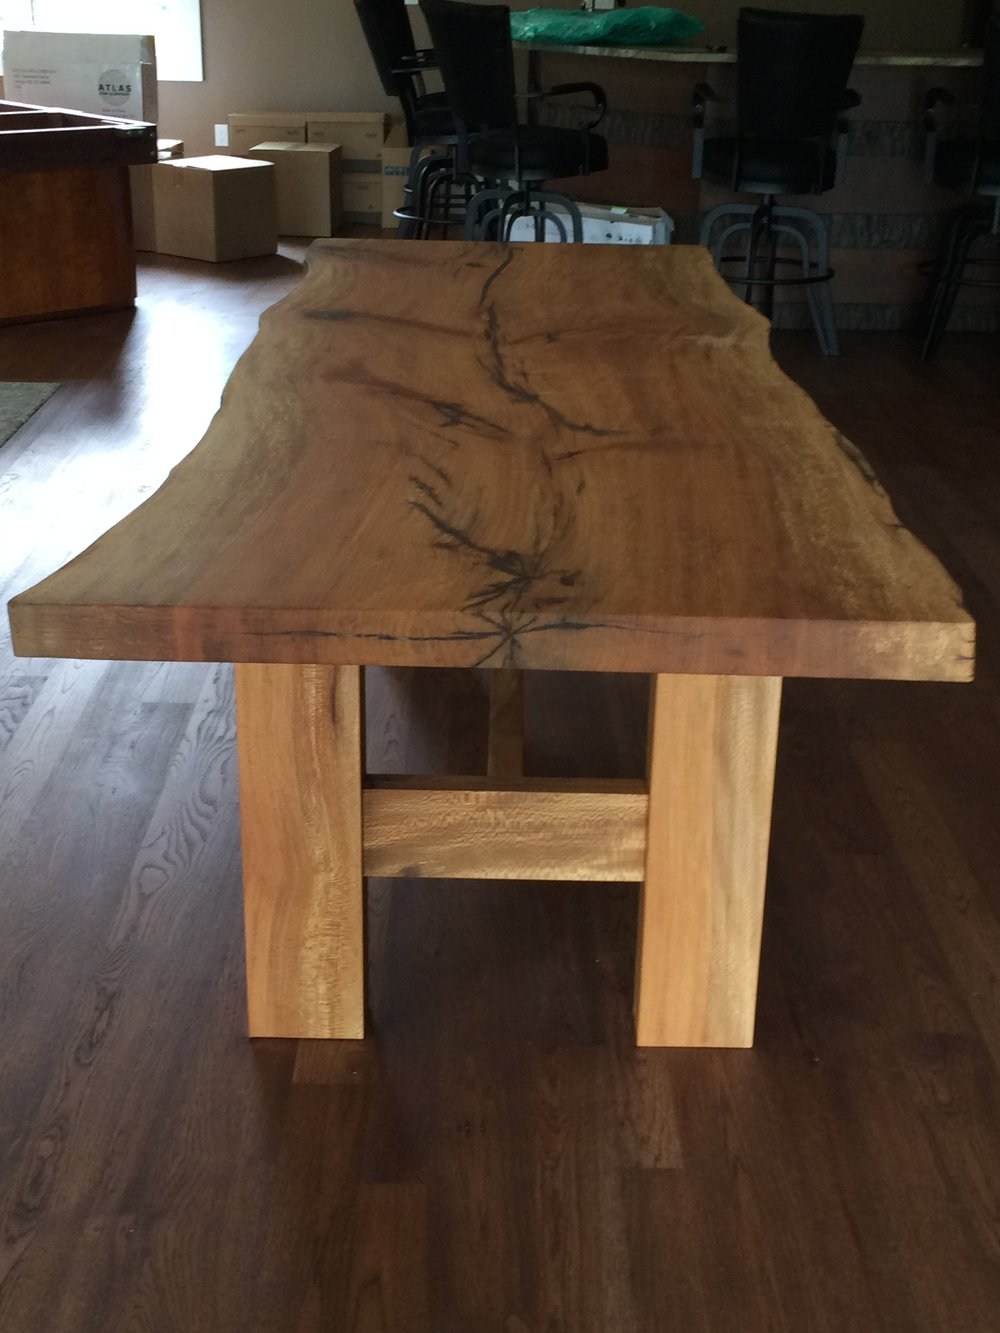 Live edge quarter sawn sycamore dinning room table with mortise and tendon quarter sawn sycamore legs